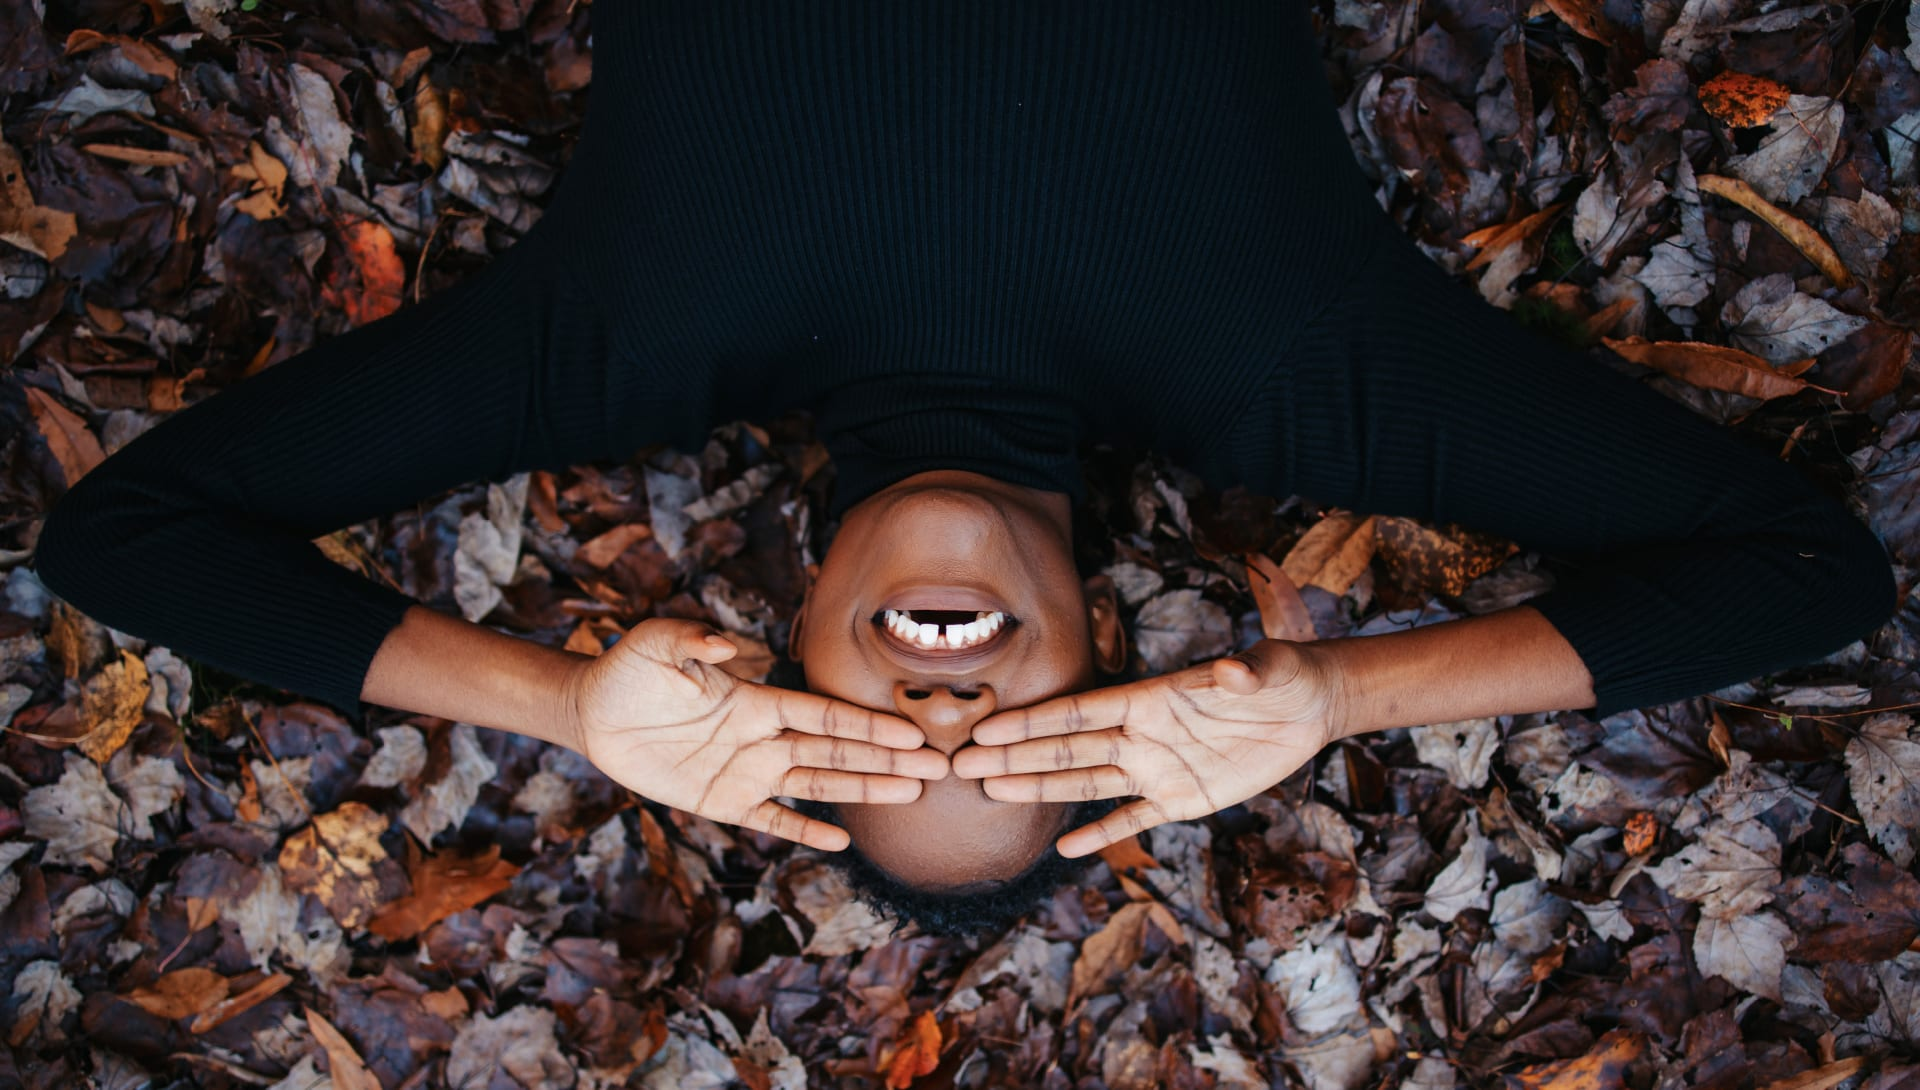 These Are the 6 Best Places to Stargaze in the U.S. Without Going Deep Into the Woods